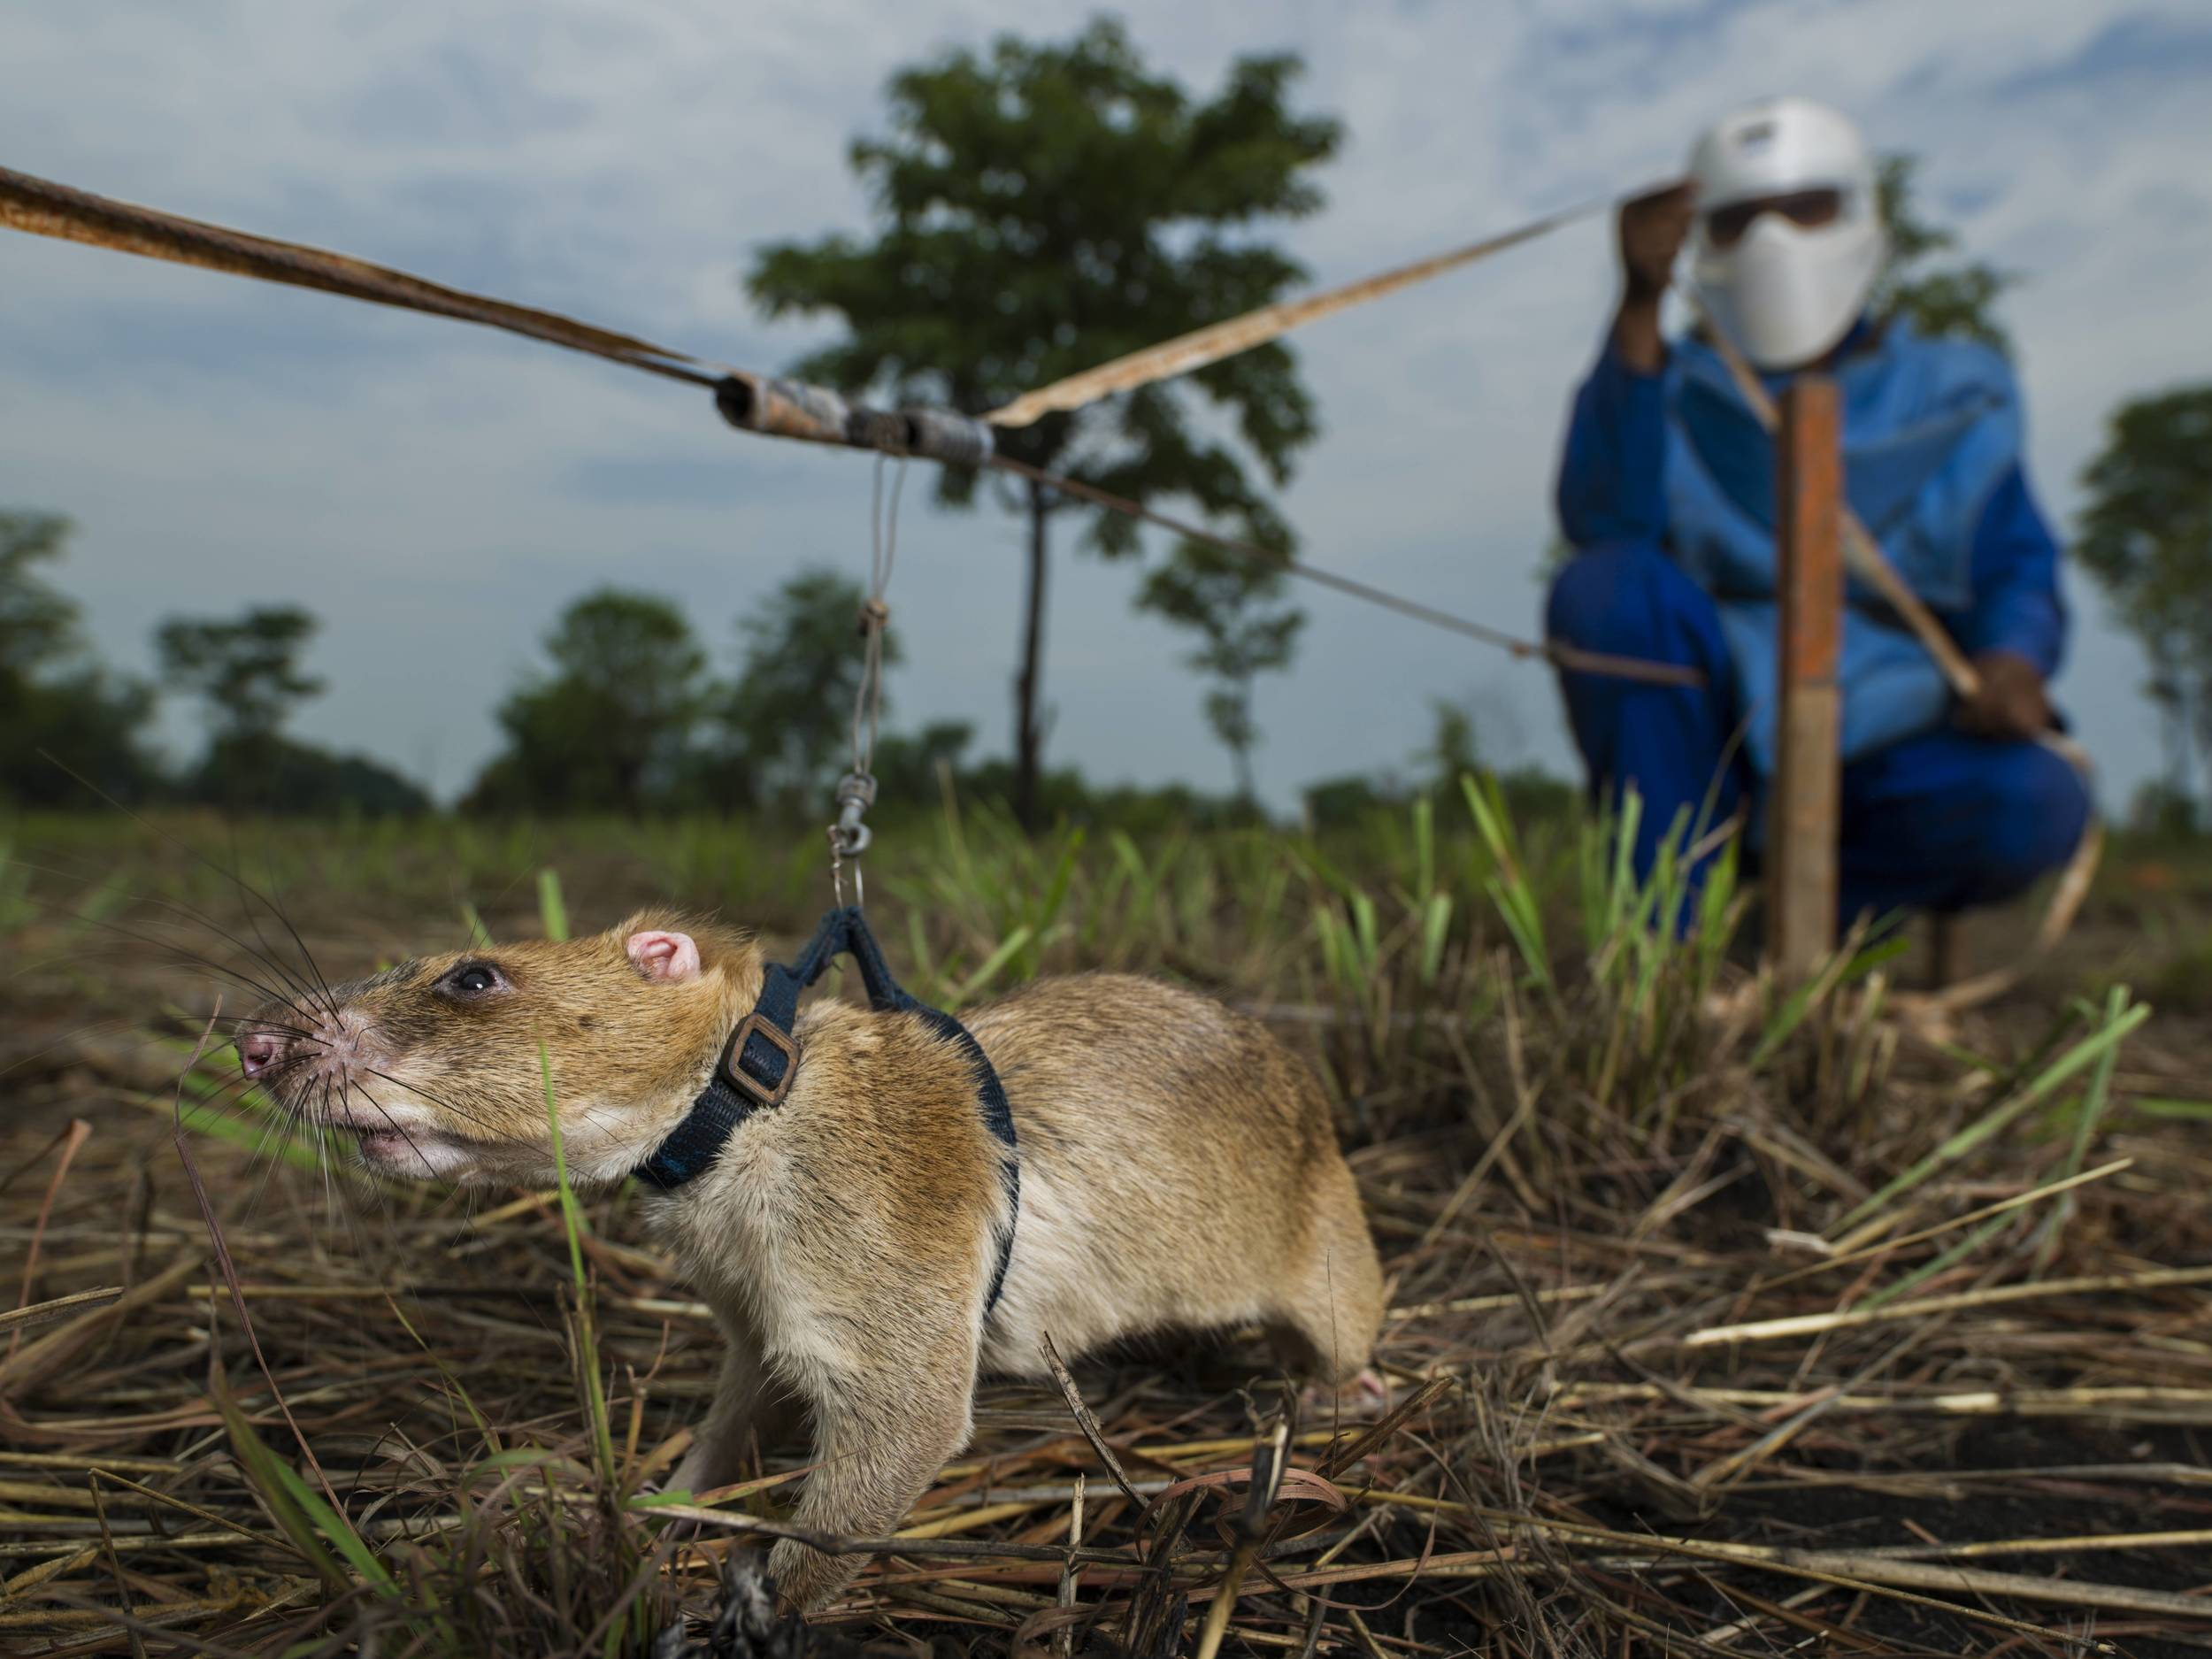 GONDOLA DISTRICT, MOZAMBIQUE: African pouch rats, with their acute sense of smell, are trained by Anti-Personnel Landmines Detection Product Development (APOPO)to sniff out landmines, which are subsequently detonated on the spot by deminers. Using rats significantly speeds up the process of clearing landmines.Brent Stirton/Getty Images/ICRC